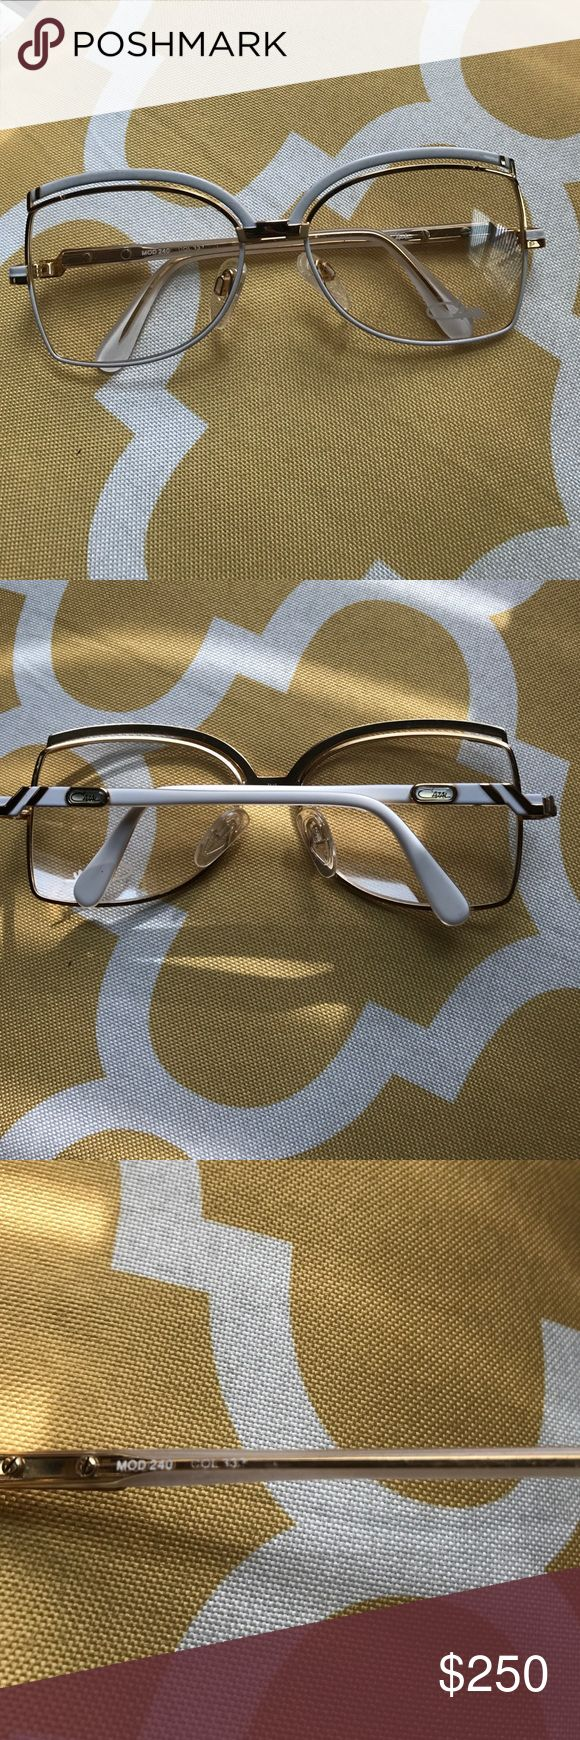 Cazal sunglasses Vintage one of a kind Cazal White and Gold sunglasses Cazal Accessories Sunglasses